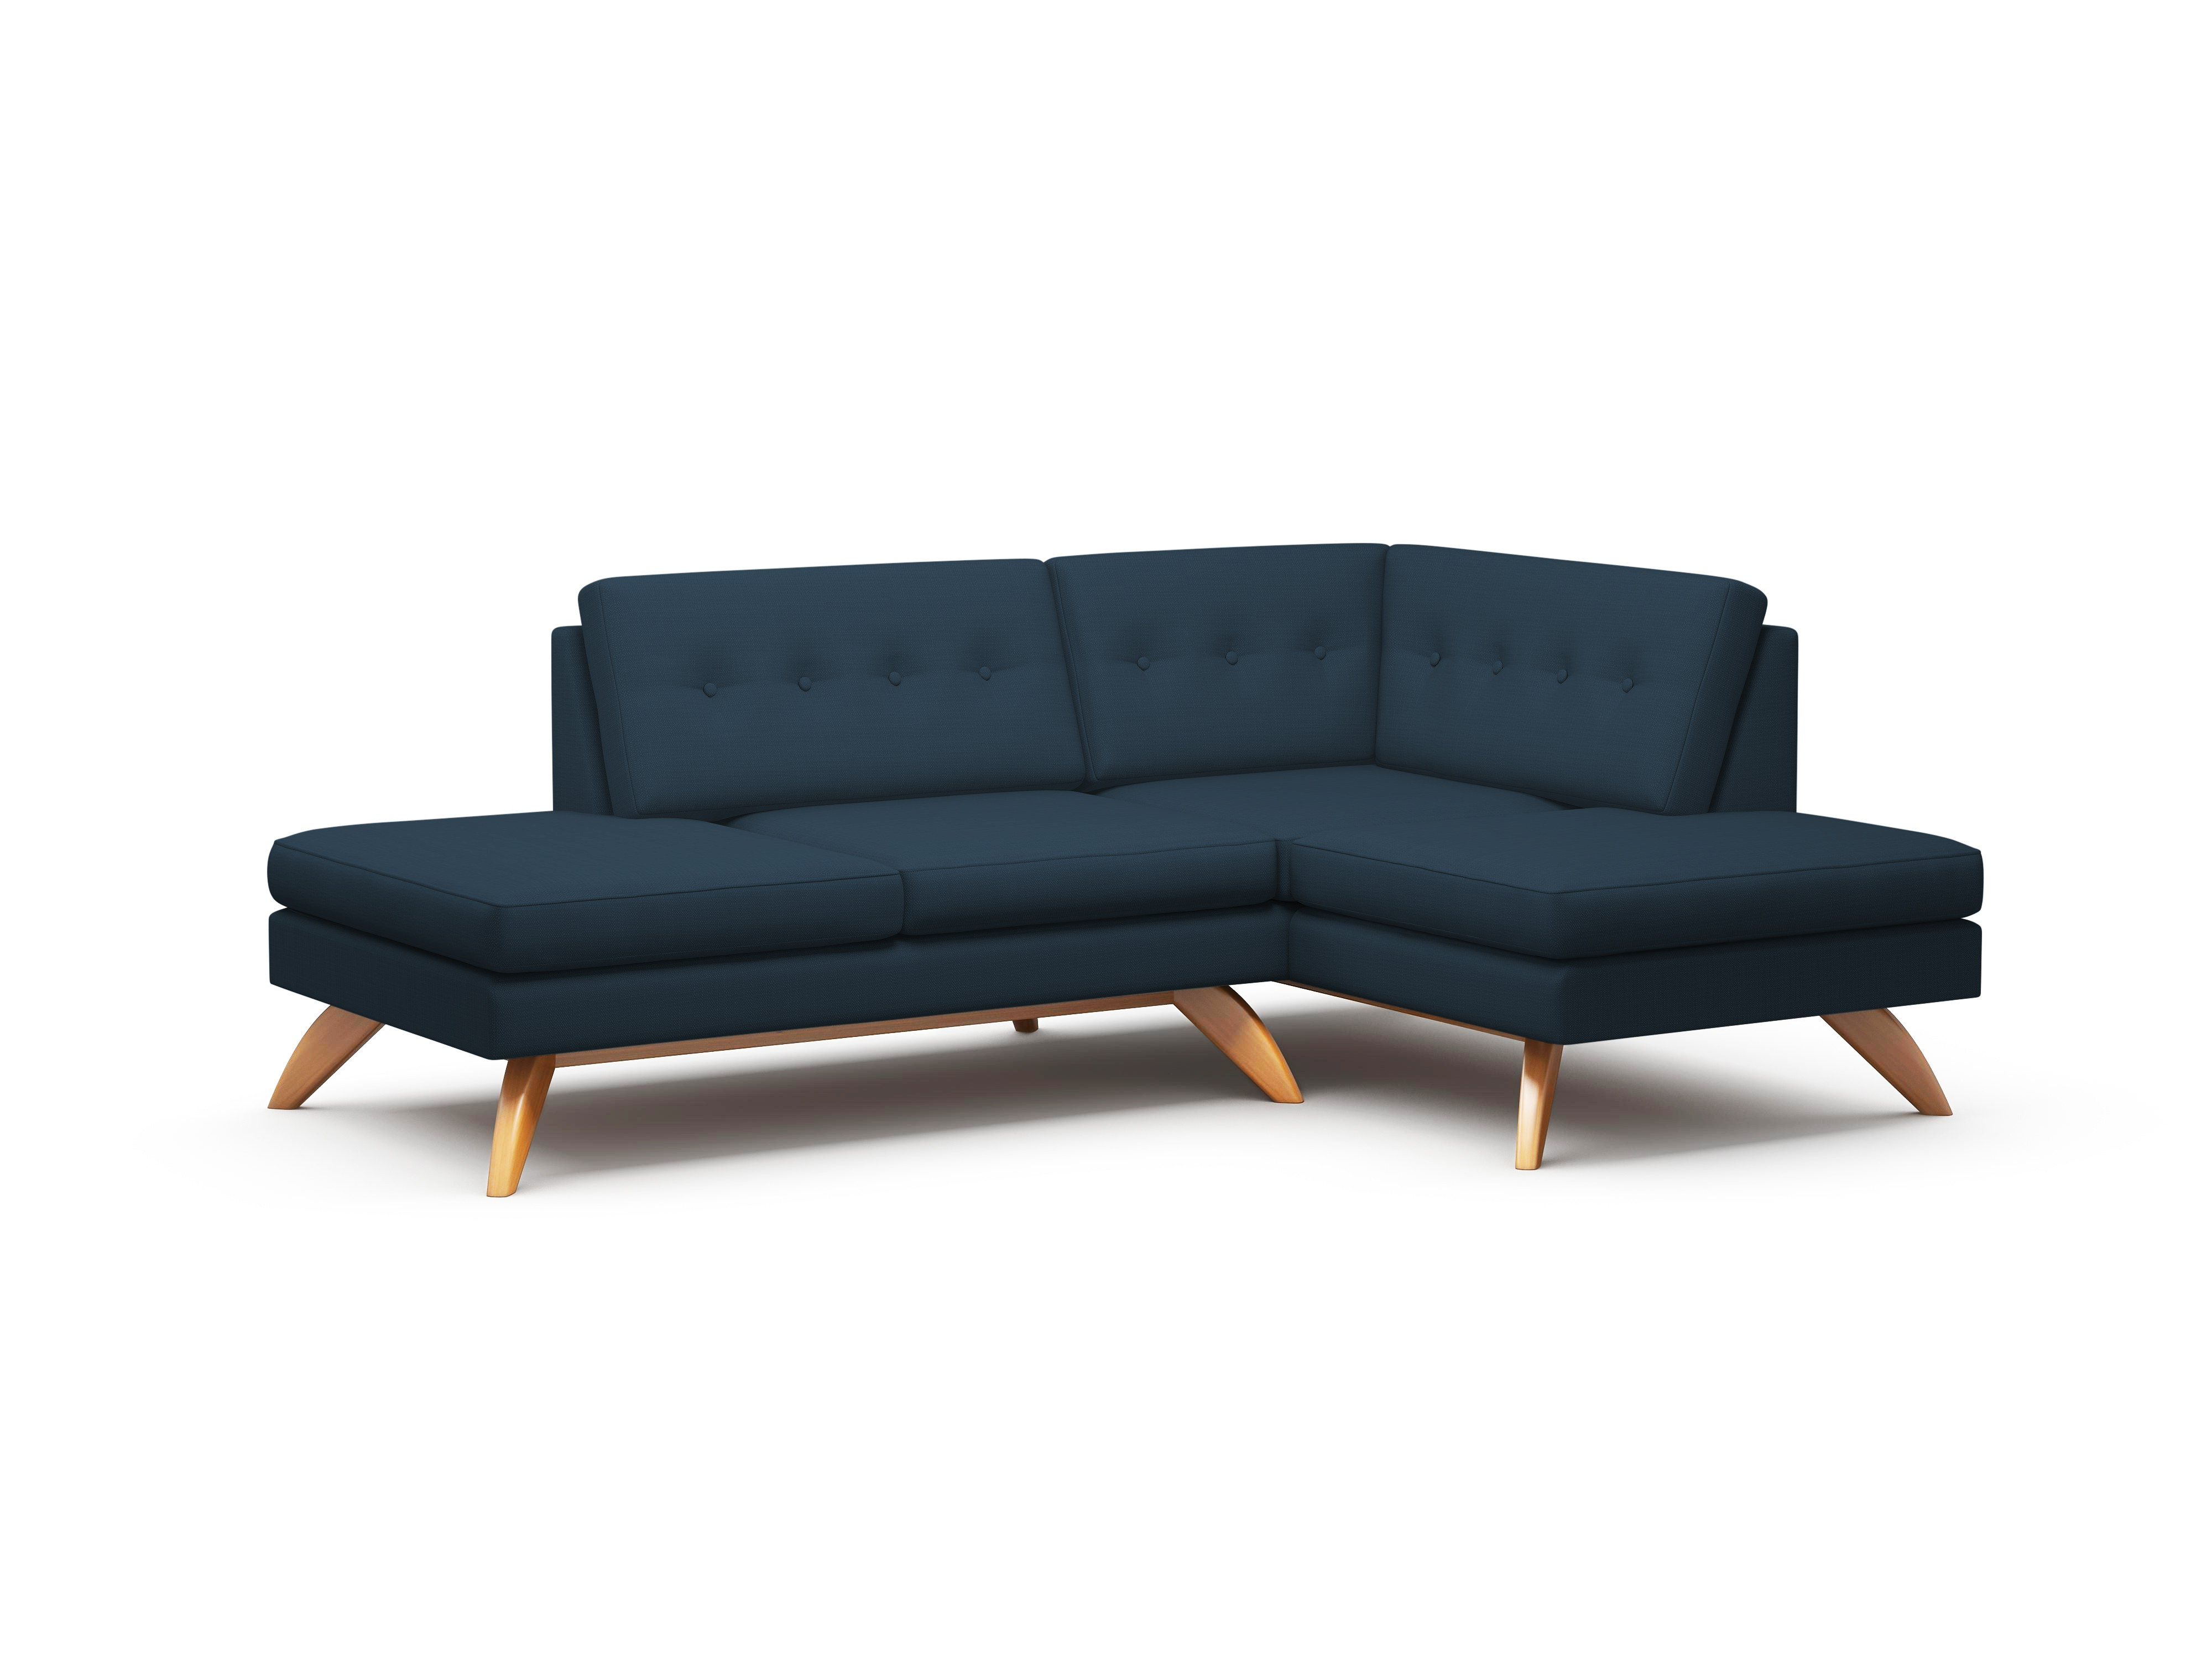 Widely Used Loft Arm Sofa Chairs Pertaining To Luna Double Bumper Loft Sofa – Truemodern™ (View 20 of 20)